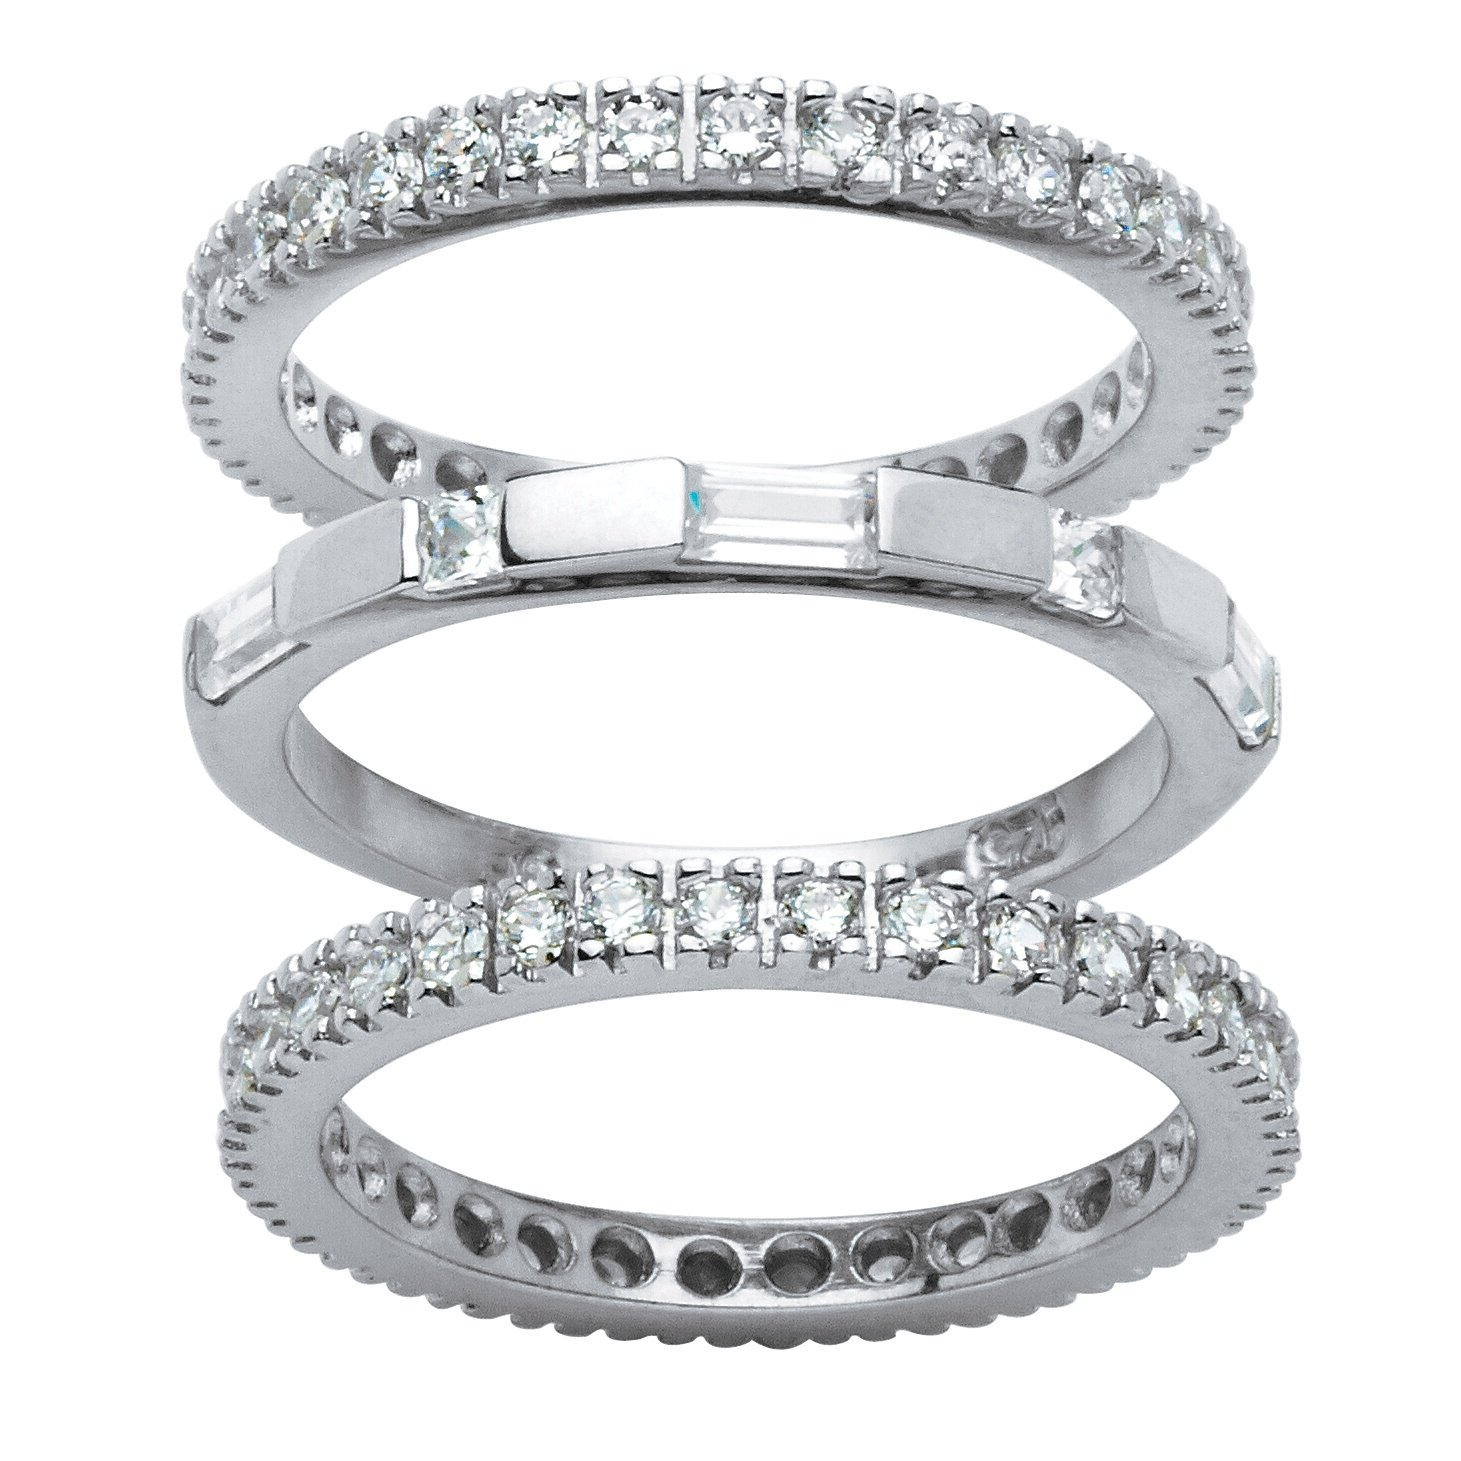 White Cubic Zirconia Platinum over .925 Sterling Silver 3-Piece Eternity Stackable Bands Set Size 6